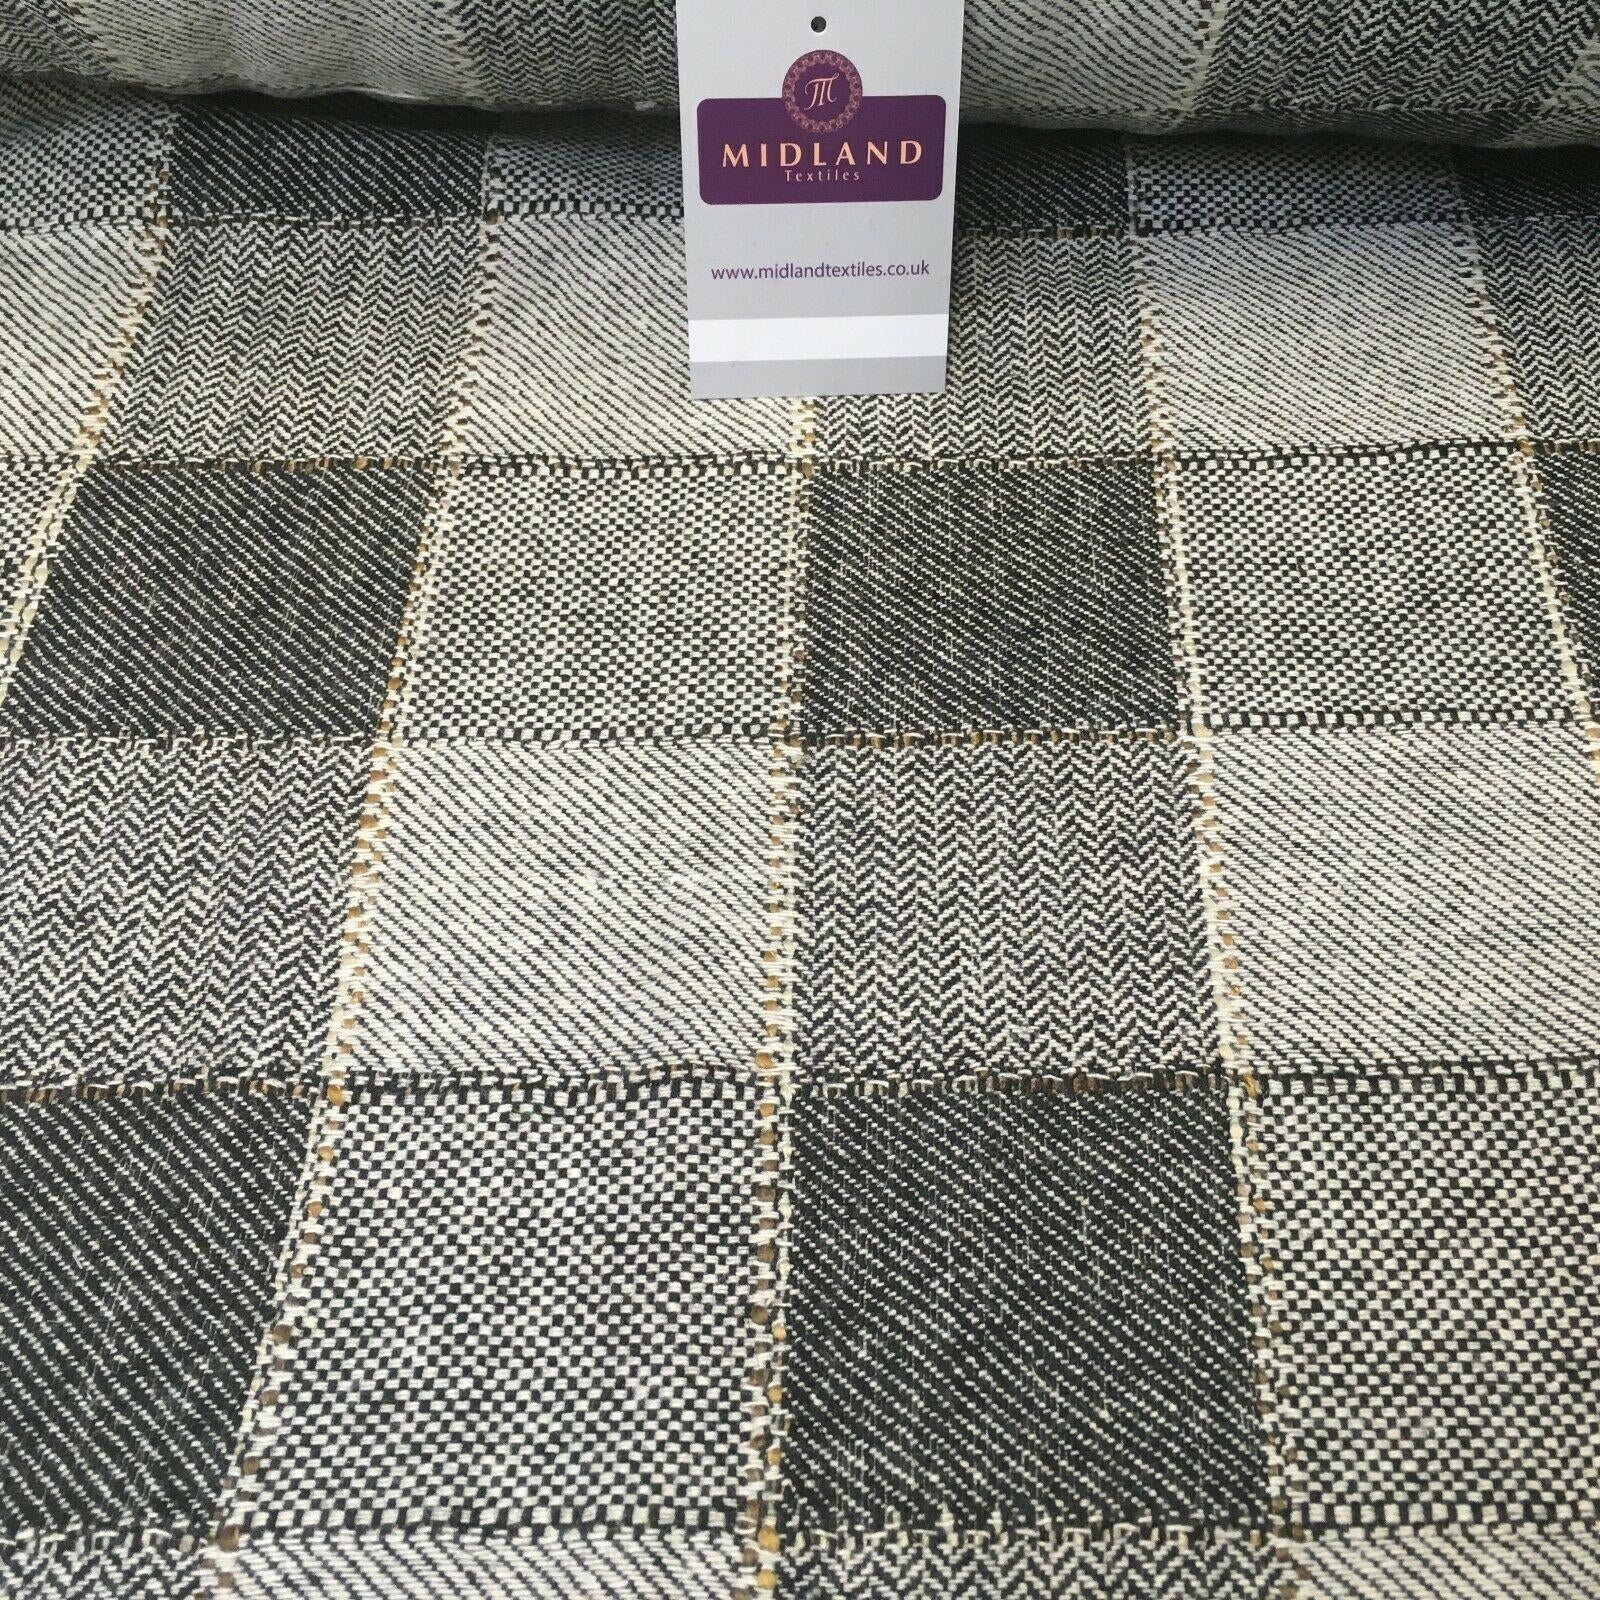 Cream & Black Check wool blend Melton Coating Poly Boucle Fabric 147 cm MK1194-6